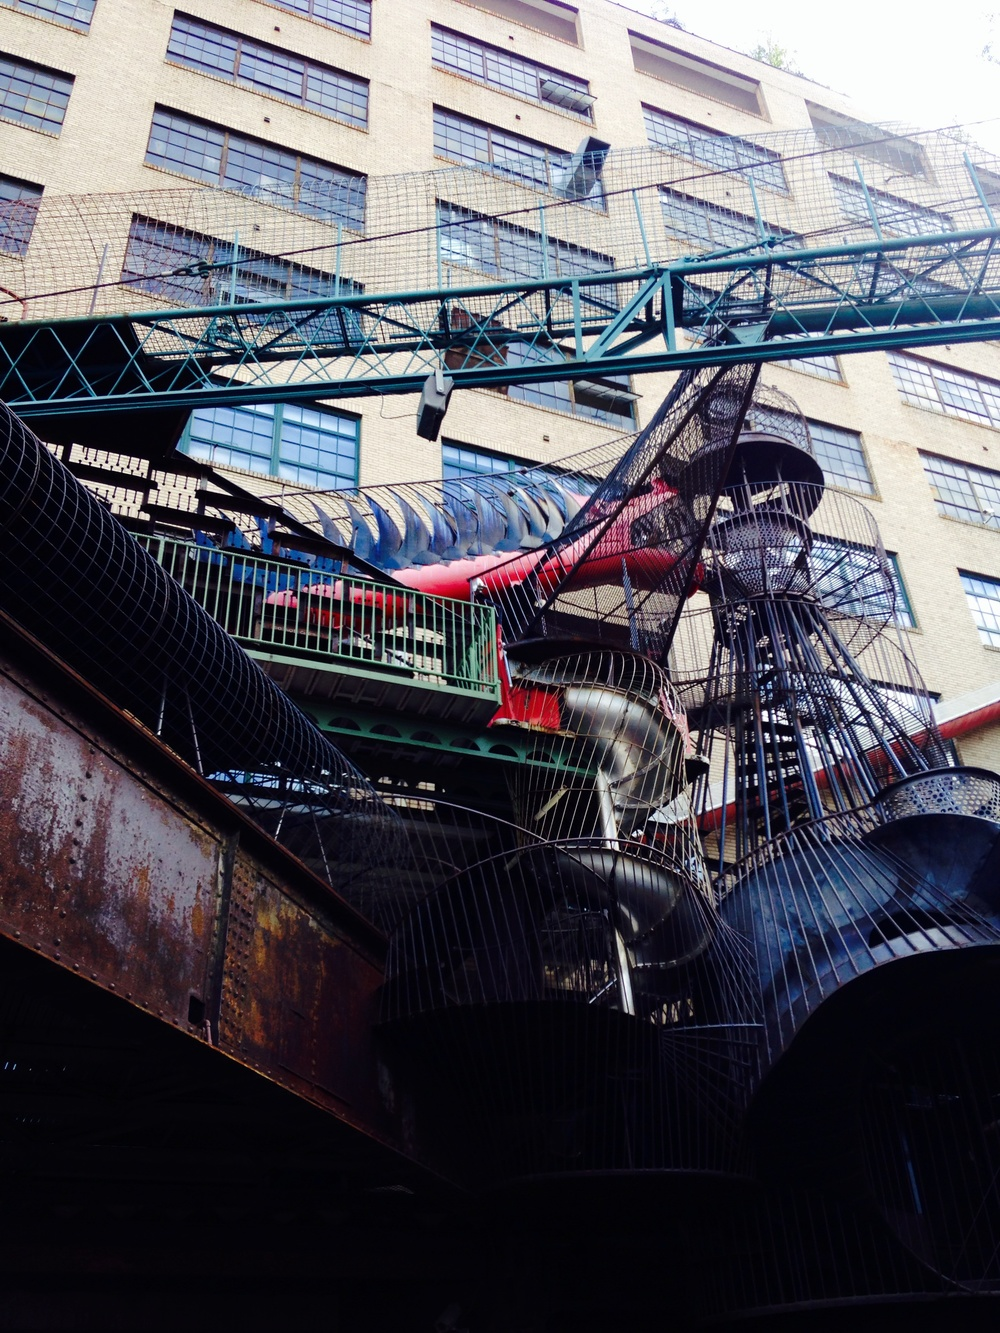 The incredible CIty Museum in St. Louis Missouri